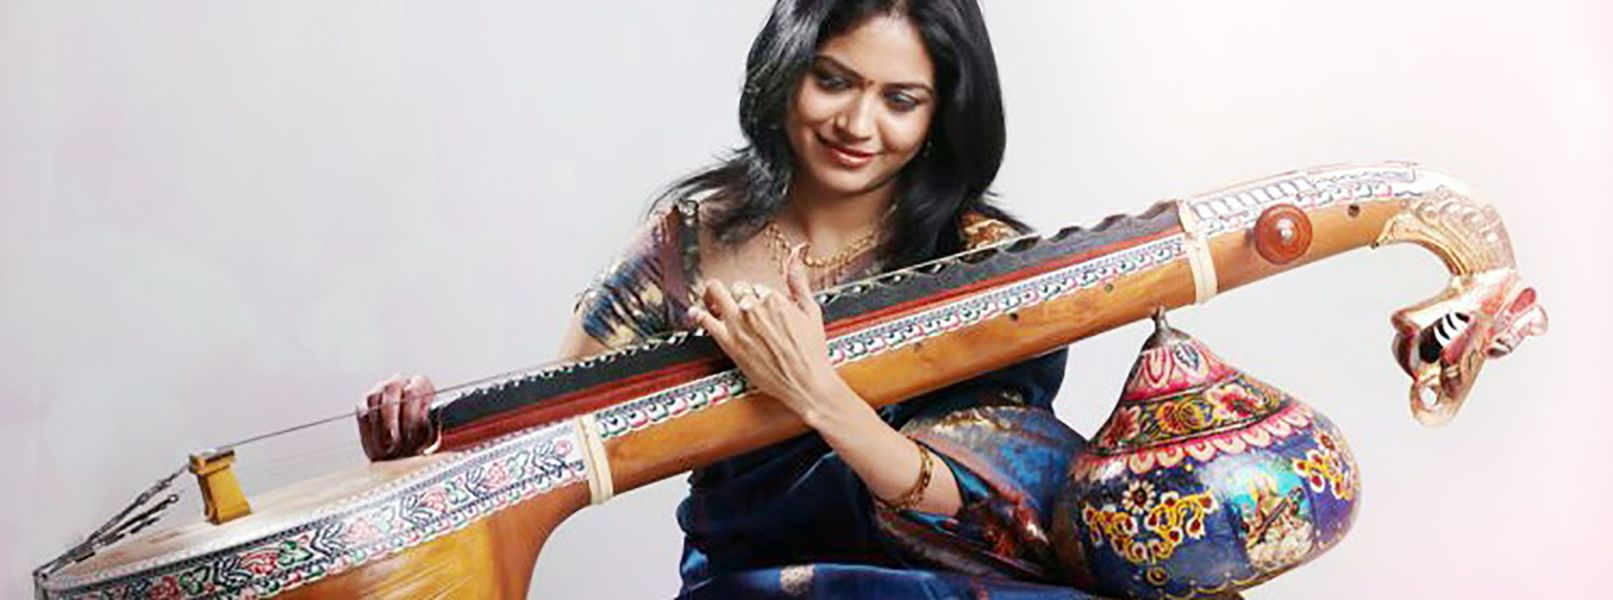 Sunitha Upadrashta playing Veena